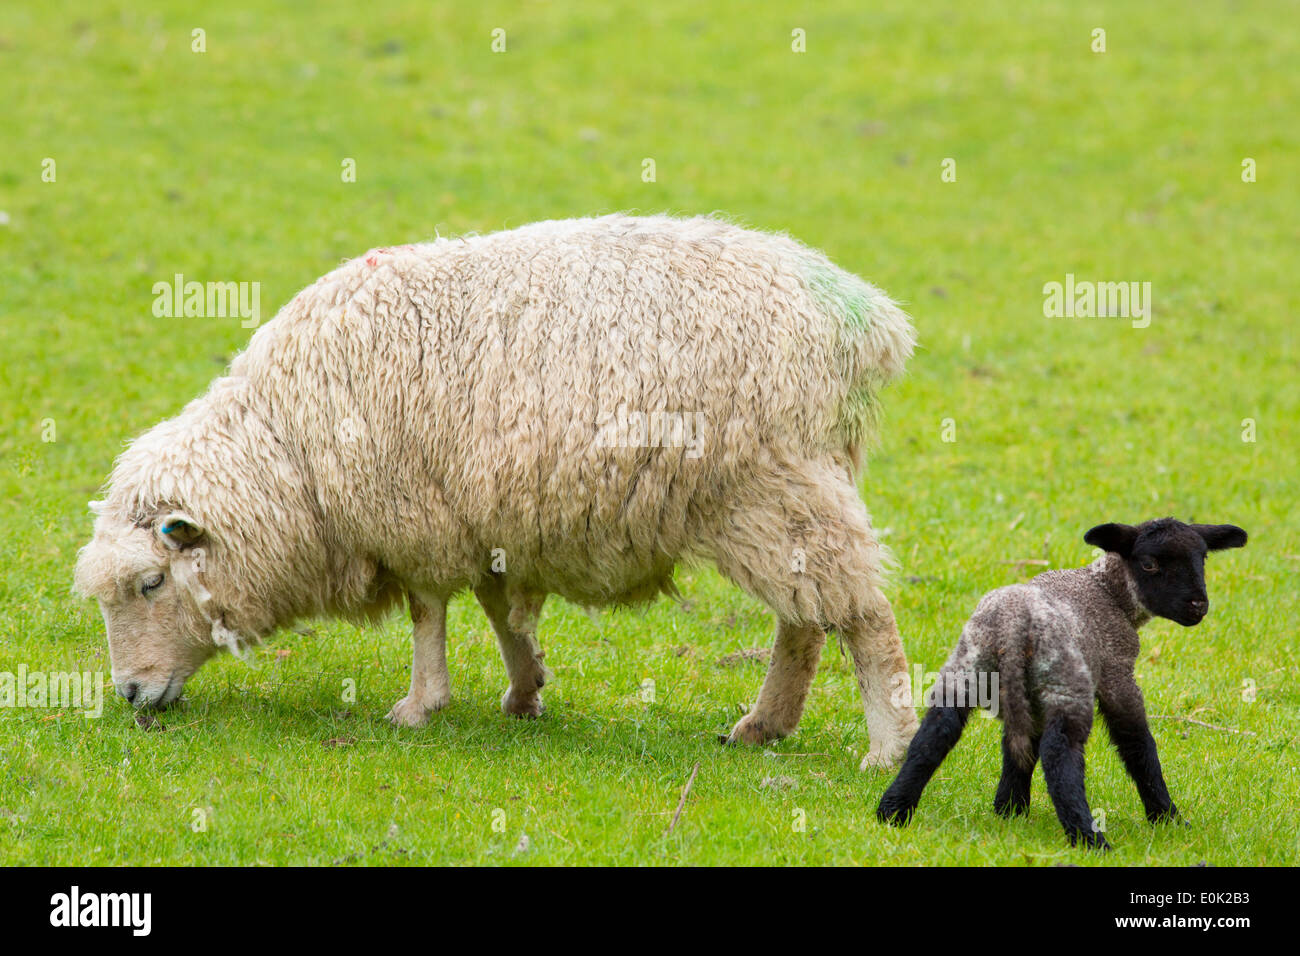 Sheep ewe and black lamb in Exmoor National Park, Somerset, United Kingdom - Stock Image